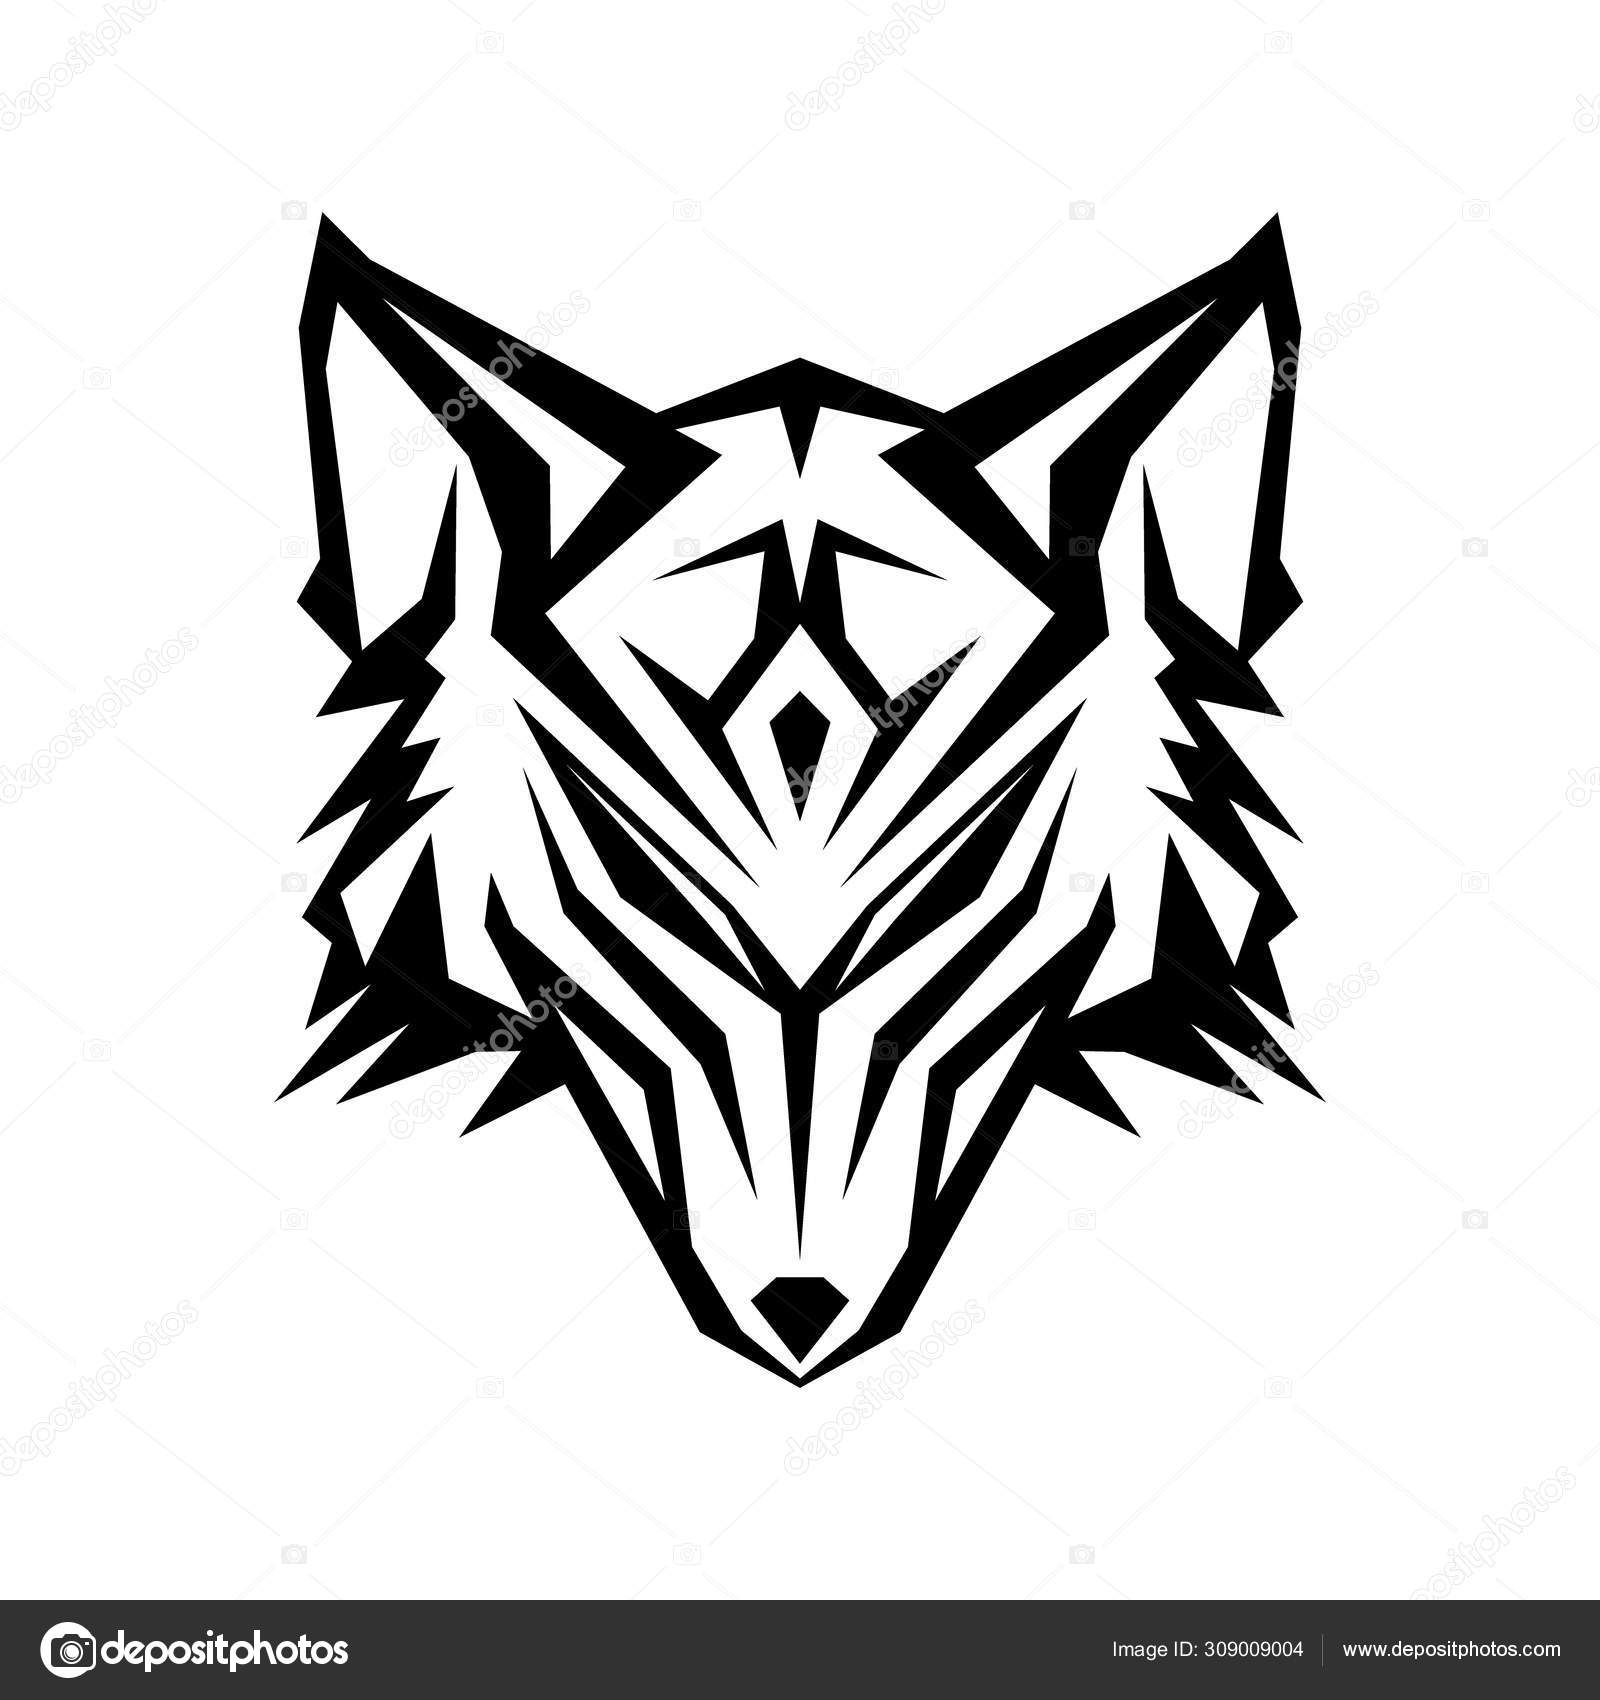 Abstract Head Wolf Icon With Color Black On The White Background Stock Vector C Taawon 309009004 Character, cute, fierce, inkcontober, wolf svg vector icon. abstract head wolf icon with color black on the white background stock vector c taawon 309009004